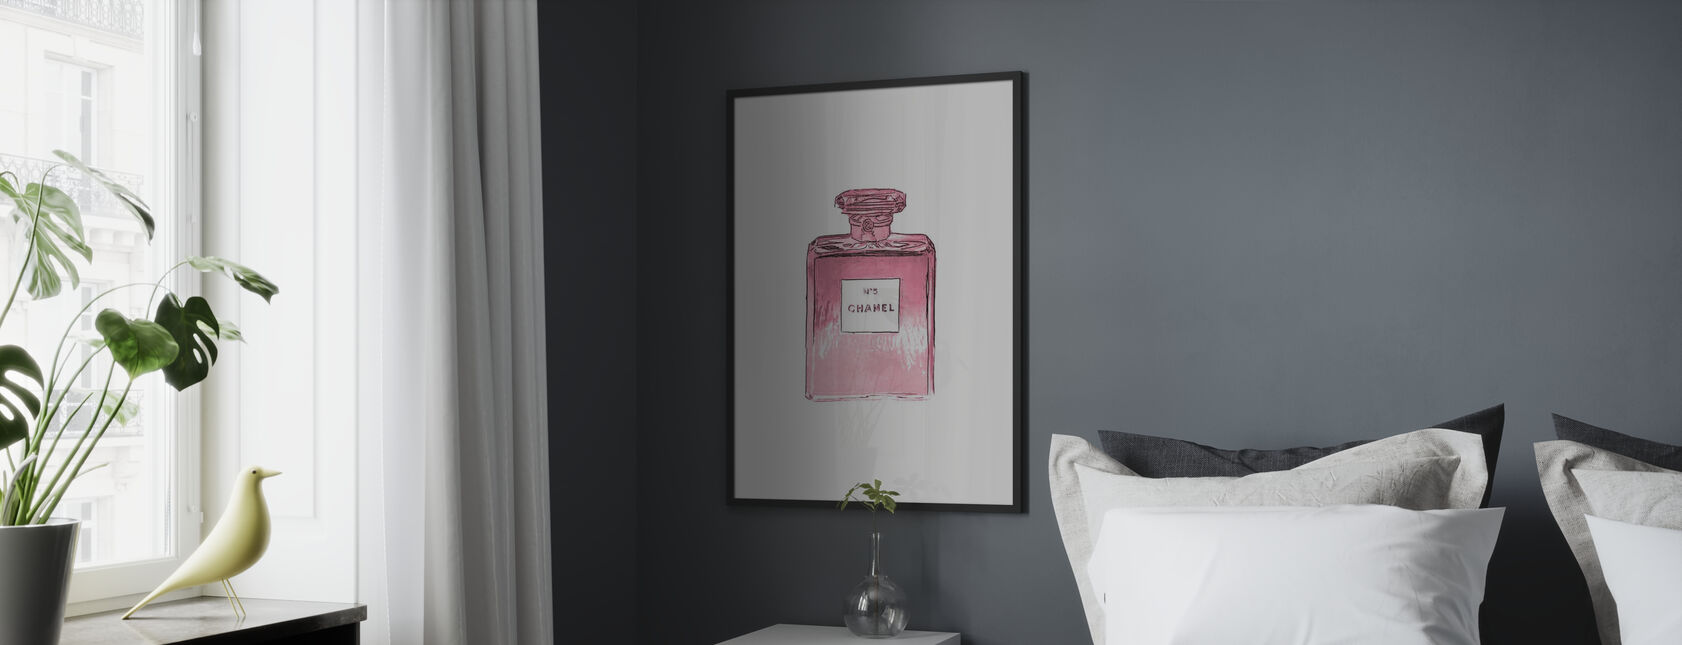 Chanel No 5 - Framed print - Bedroom